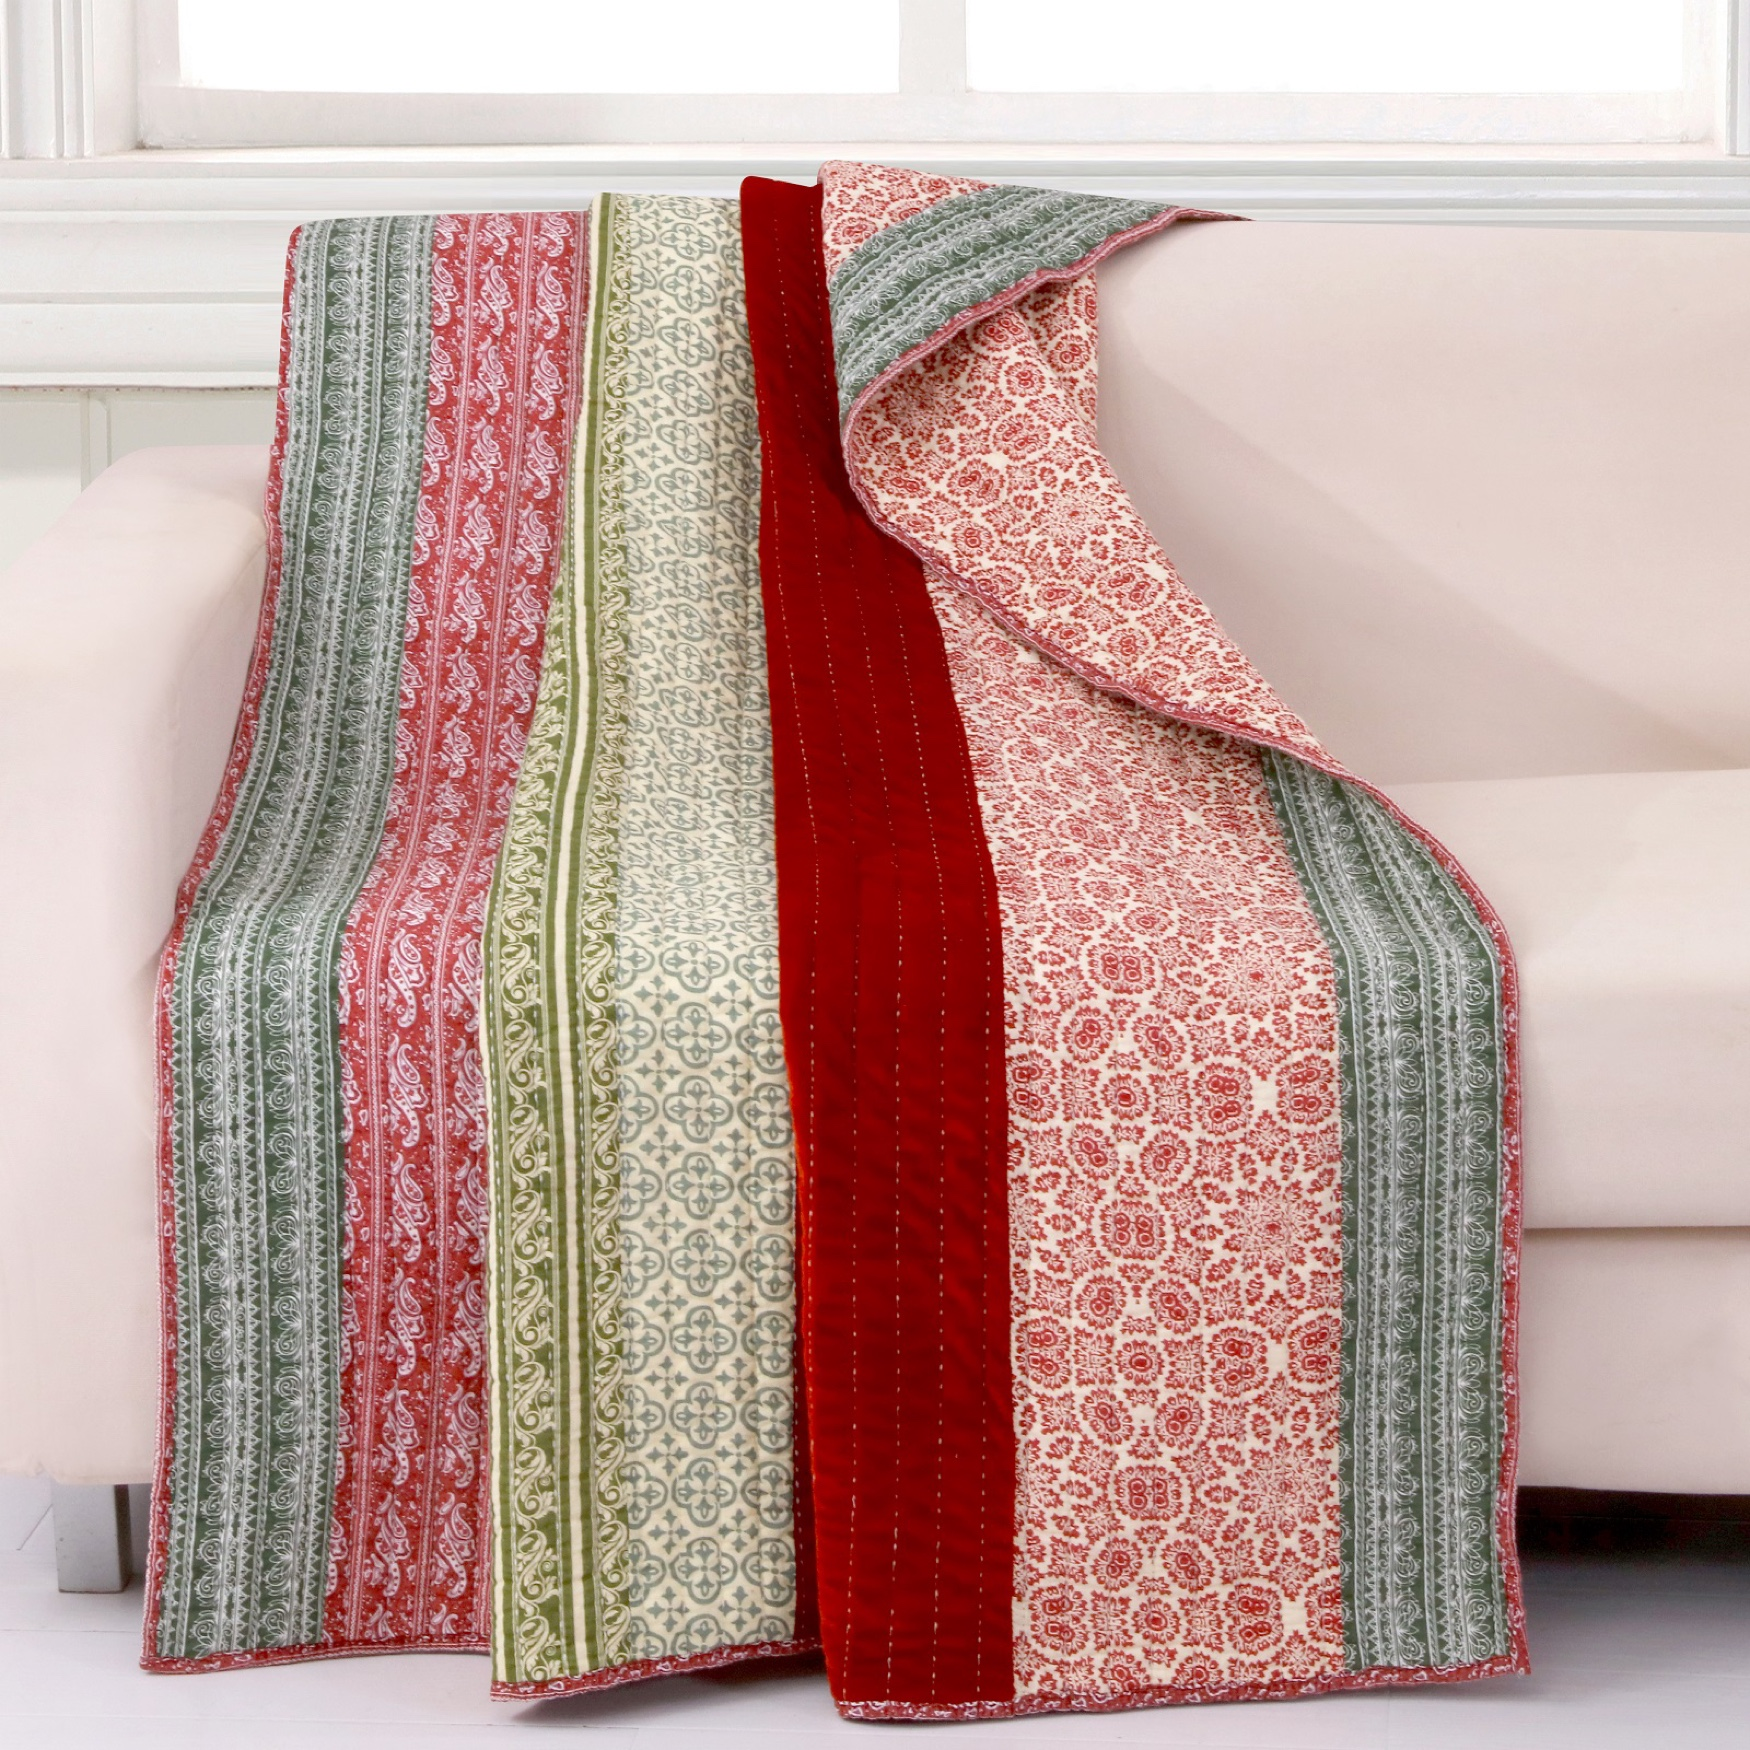 Greenland Home Fashions Marley Quilted Throw Blanket, CRANBERRY